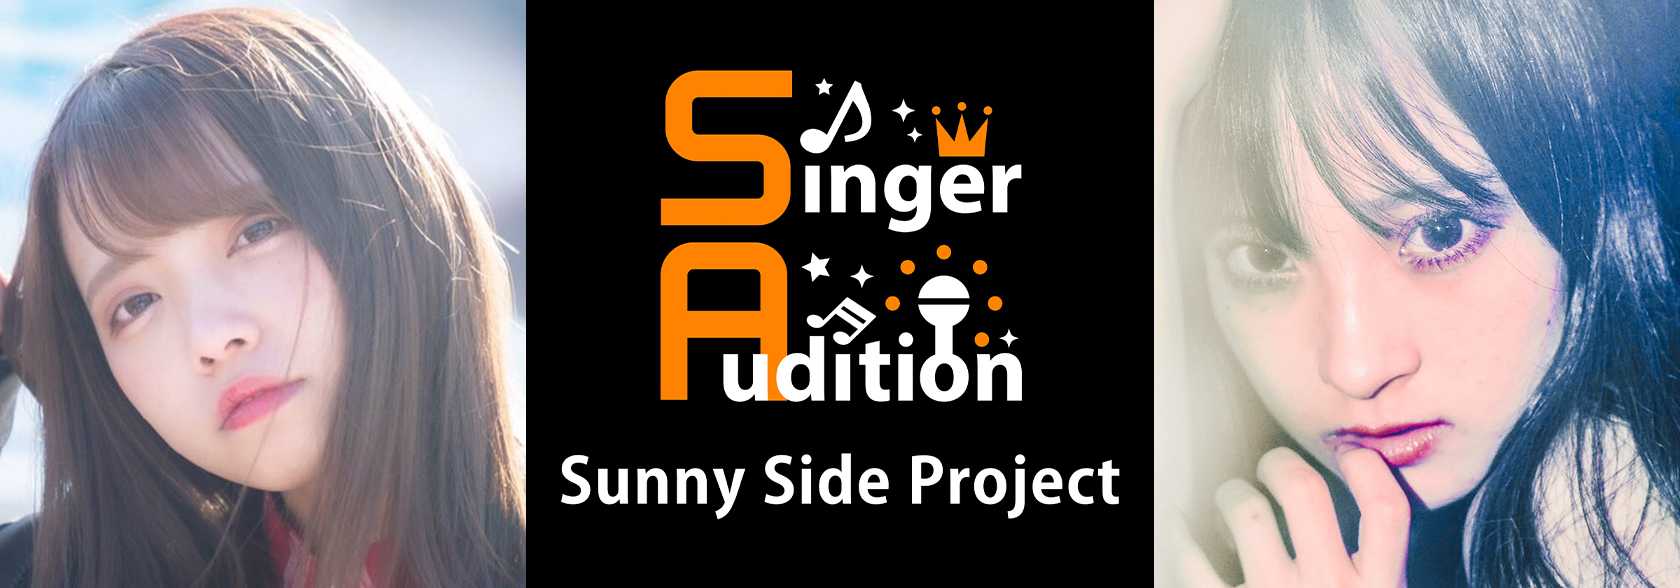 Sunny Side Project singer Auditionメイン画像